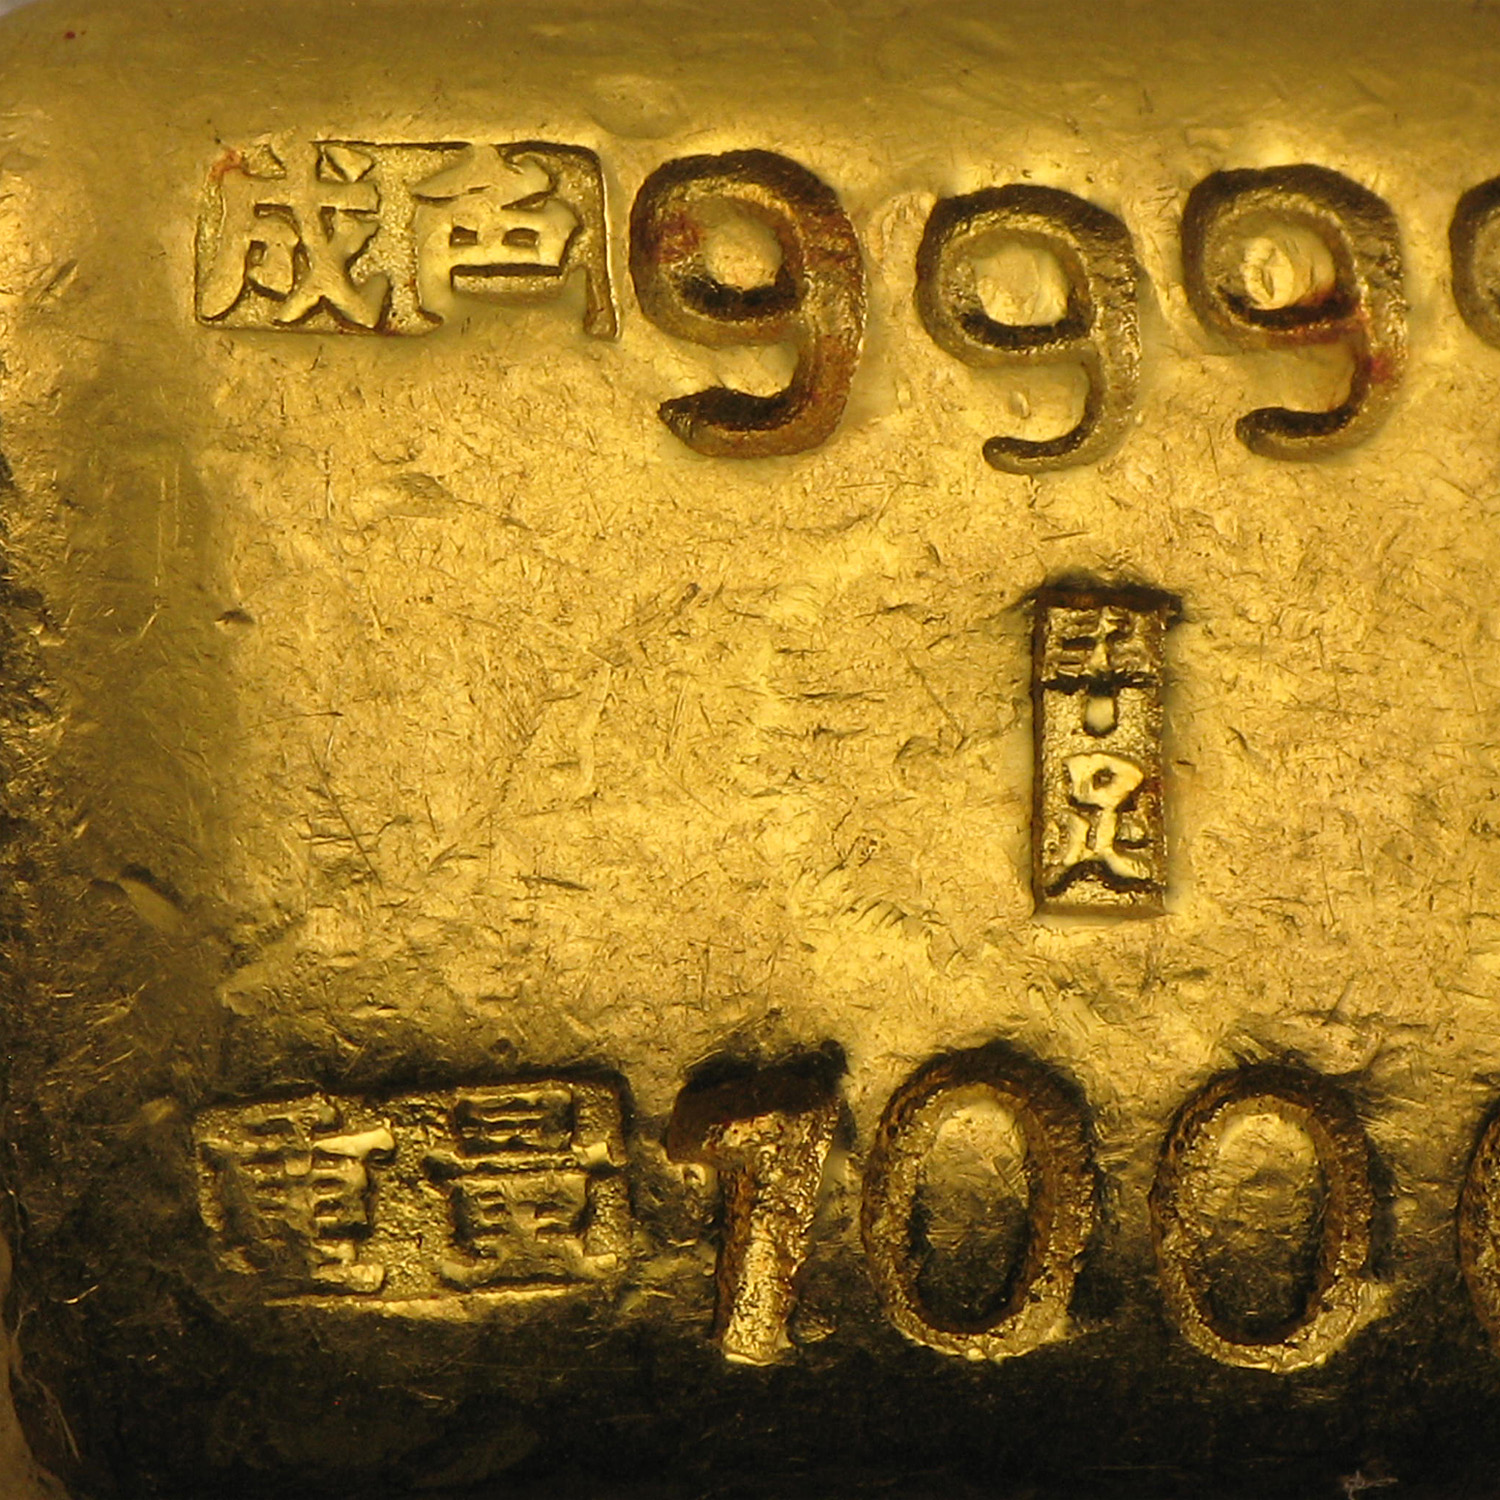 1 Tael Gold Bars - Chinese Biscuit (1.206 oz)